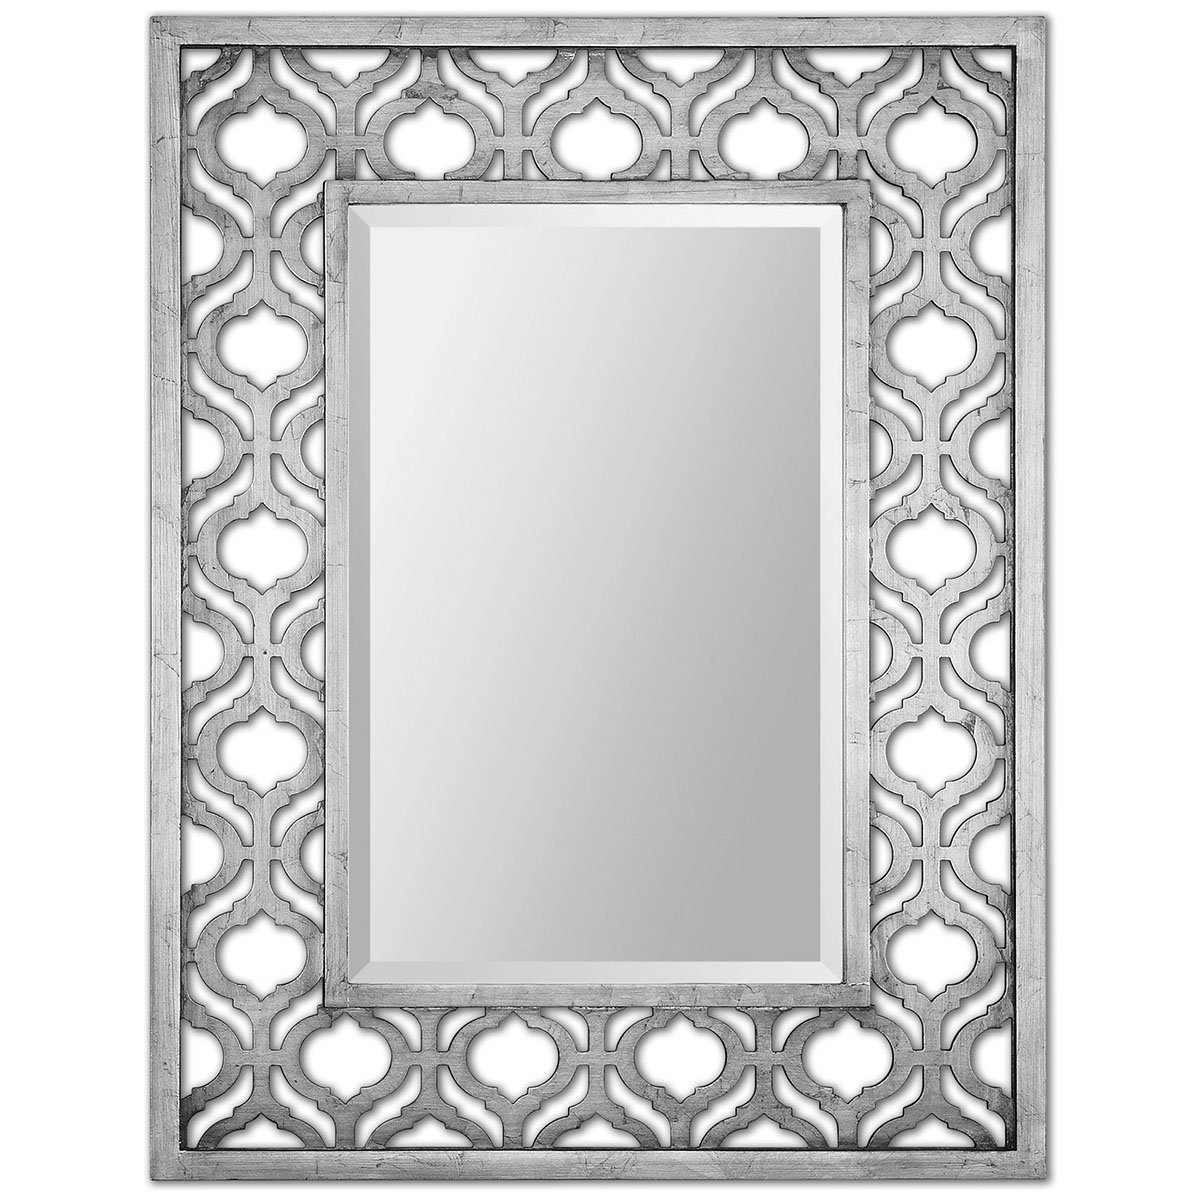 Trendy Ulus Accent Mirrors With Regard To Uttermost 13863 Sorbolo Mirror, Silver (View 13 of 20)